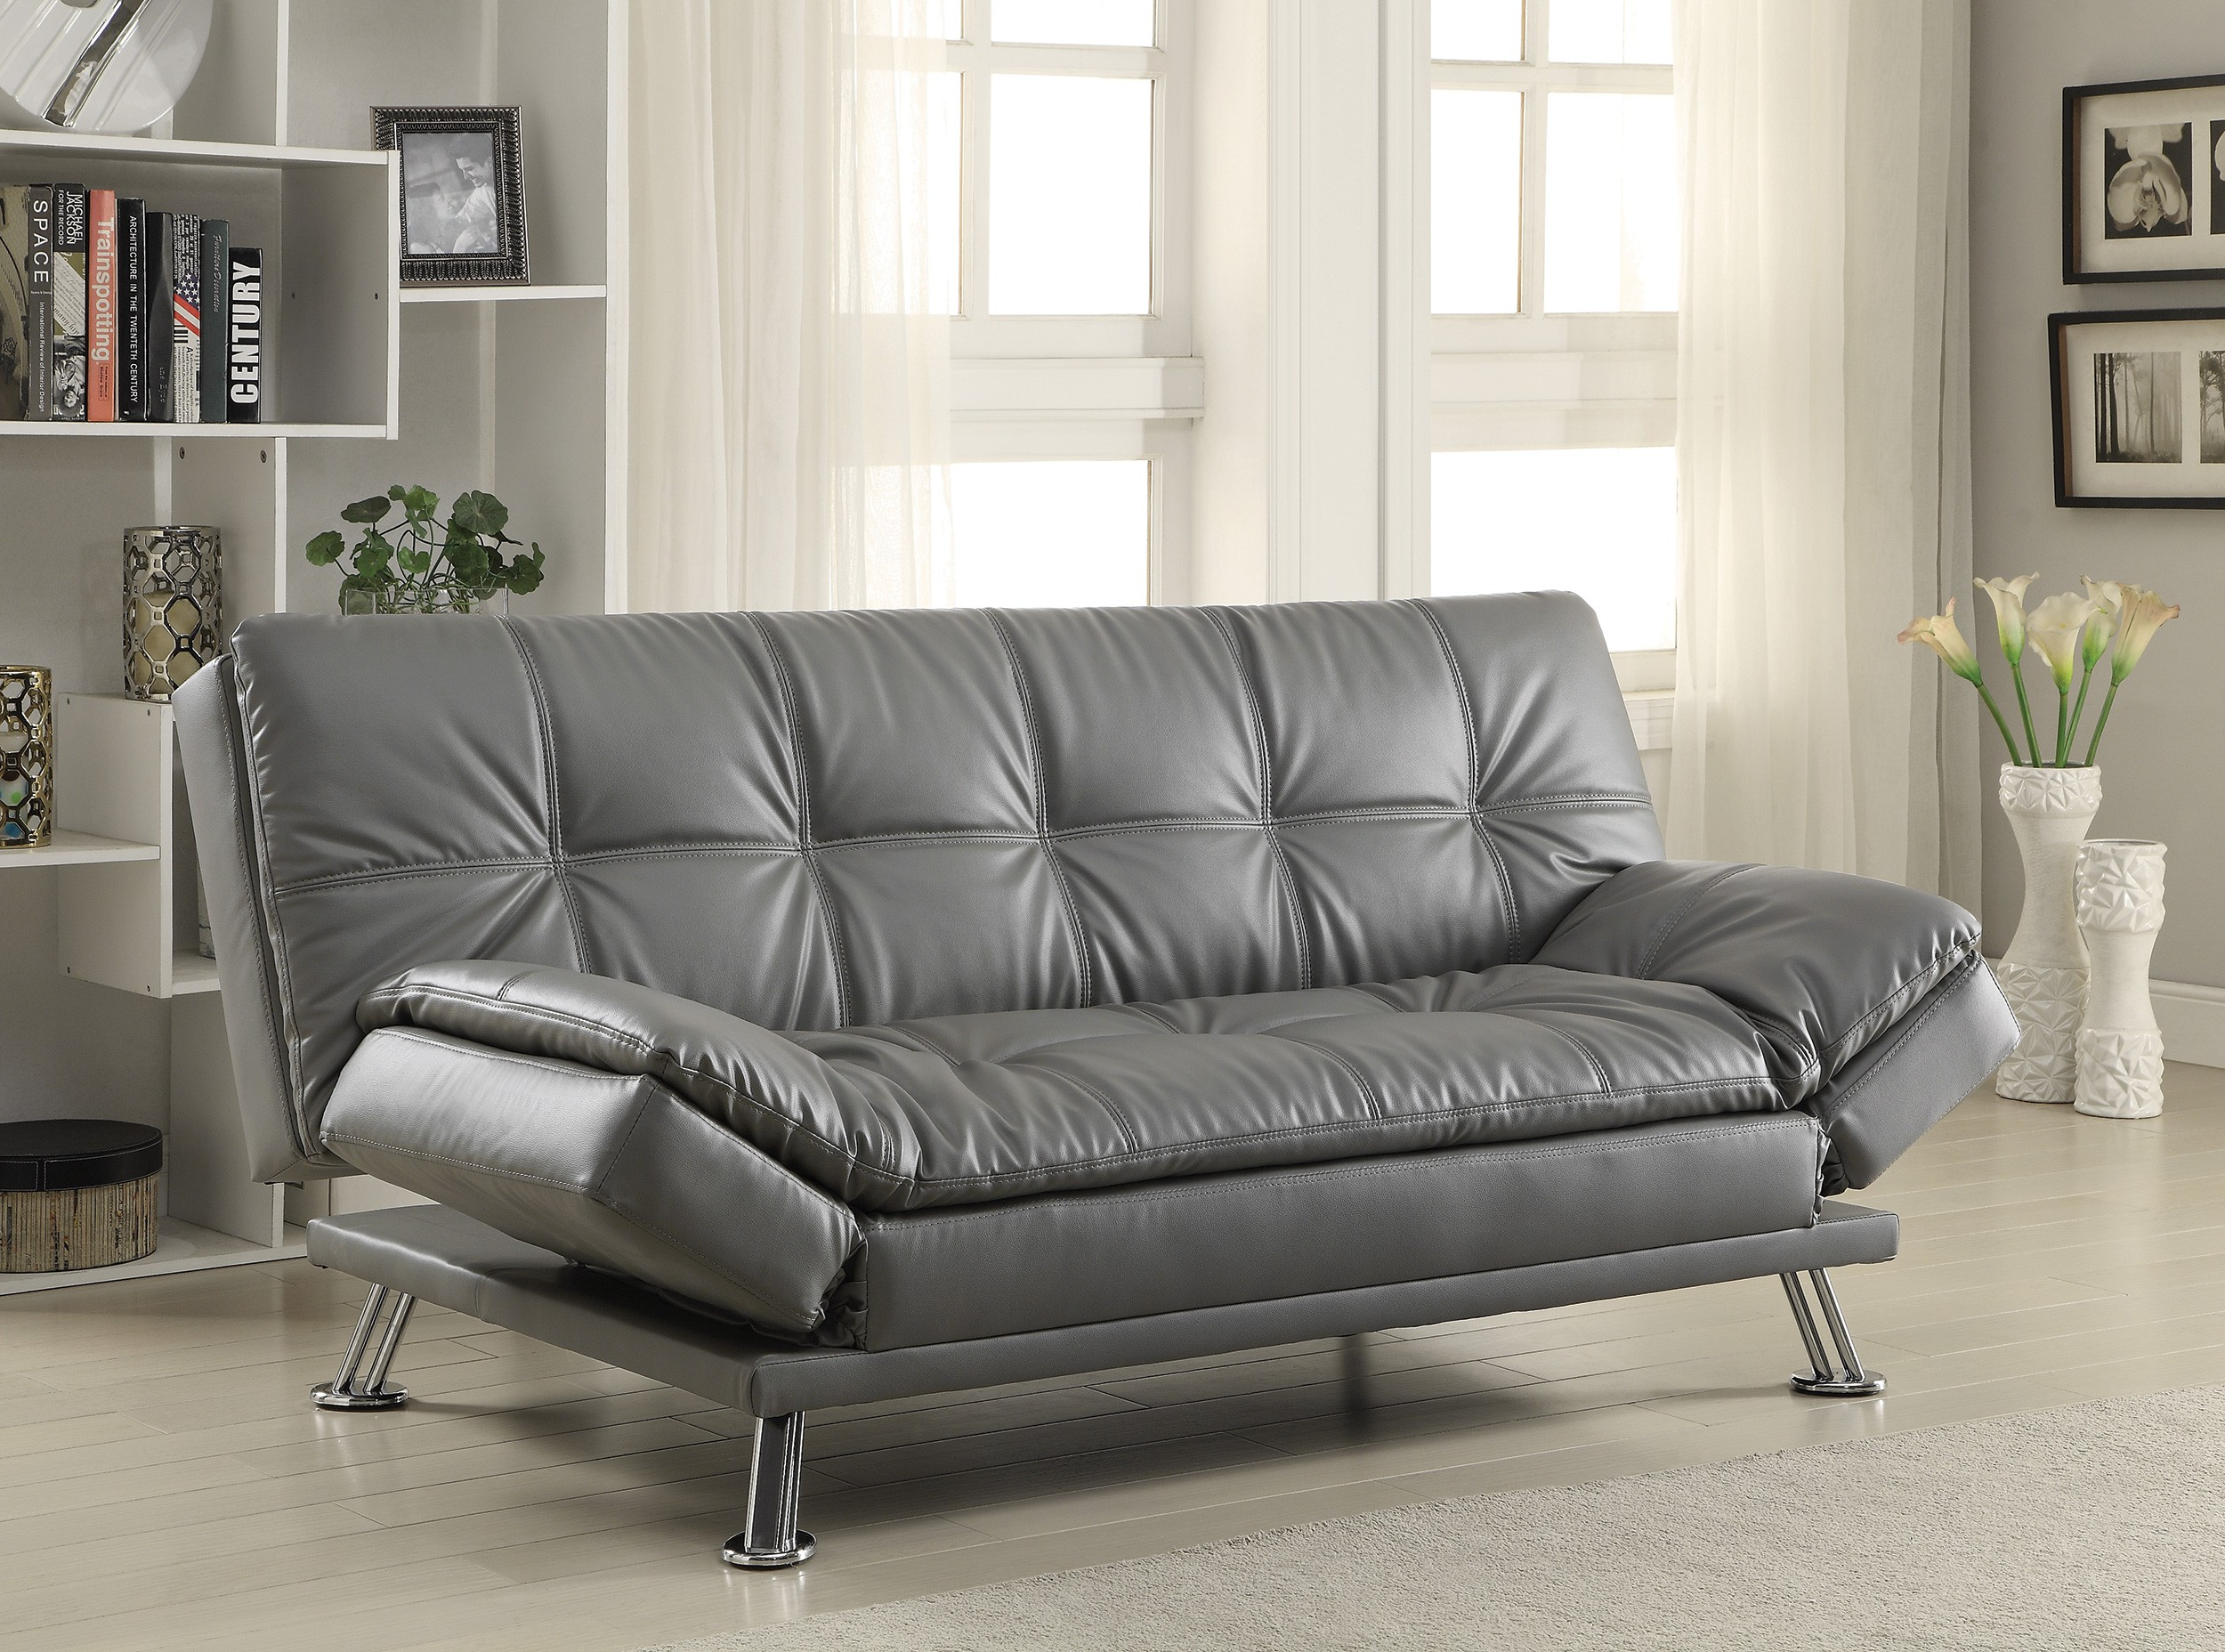 Attractive Sofa Bed Grey With Available Matching Chaise And Storage Ottoman Images